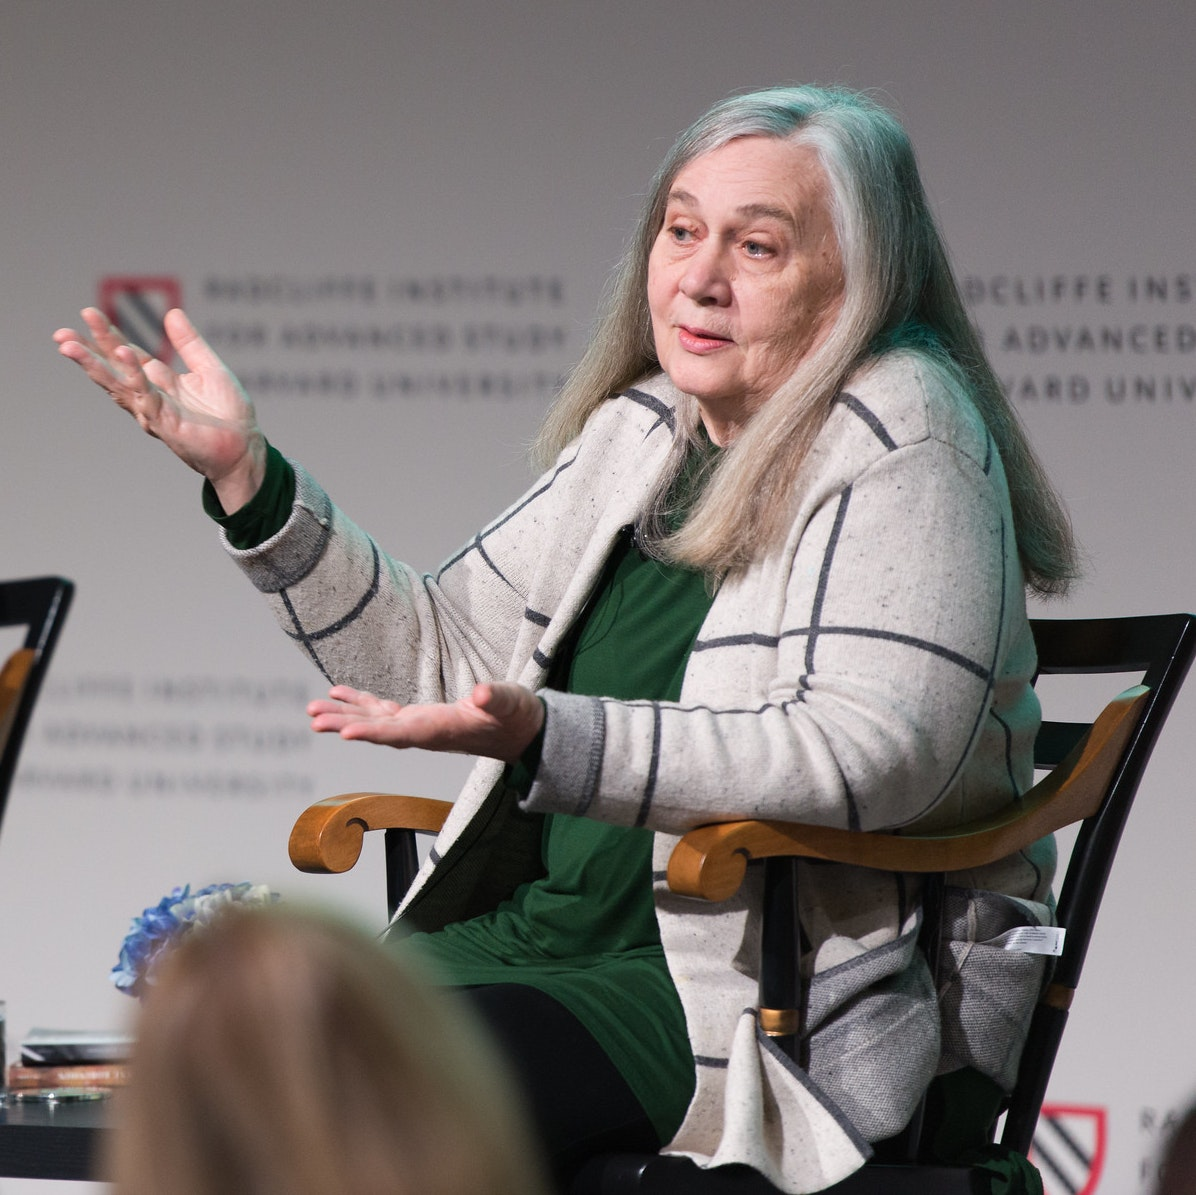 An image of Marilynne Robinson and James Wood sitting in chairs on a stage.